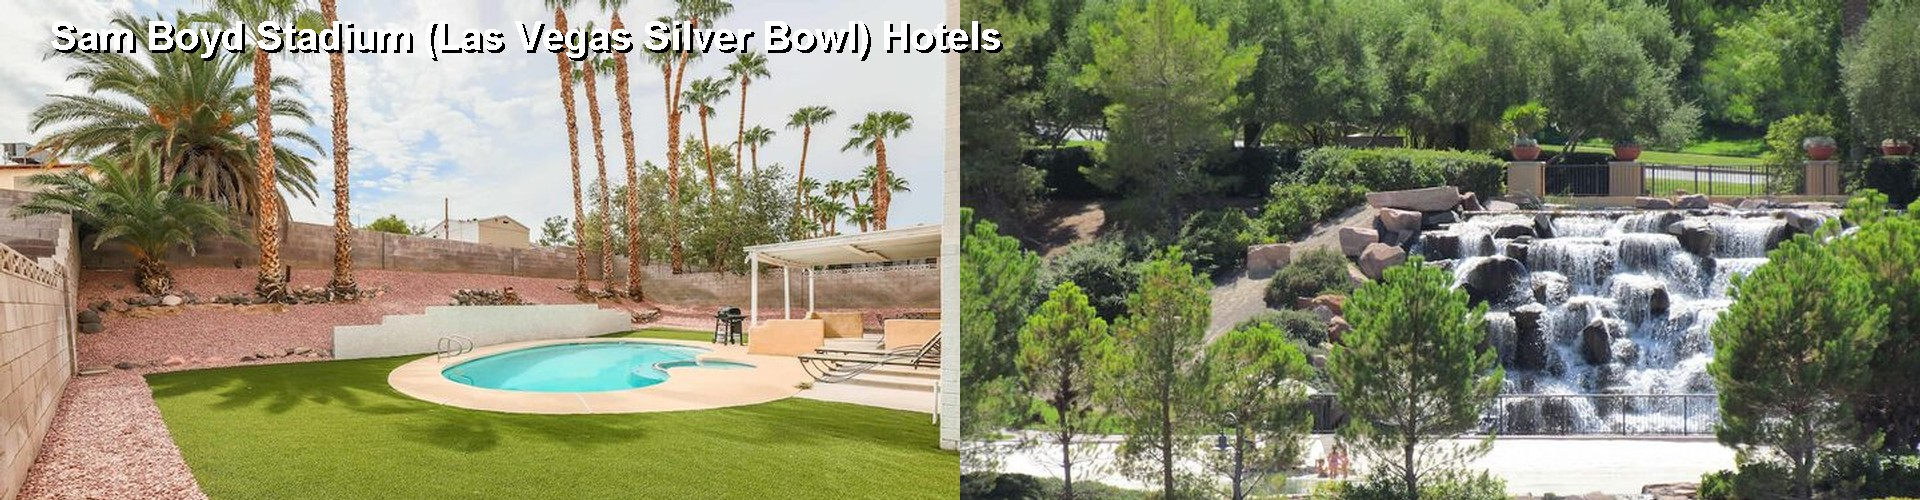 5 Best Hotels near Sam Boyd Stadium (Las Vegas Silver Bowl)